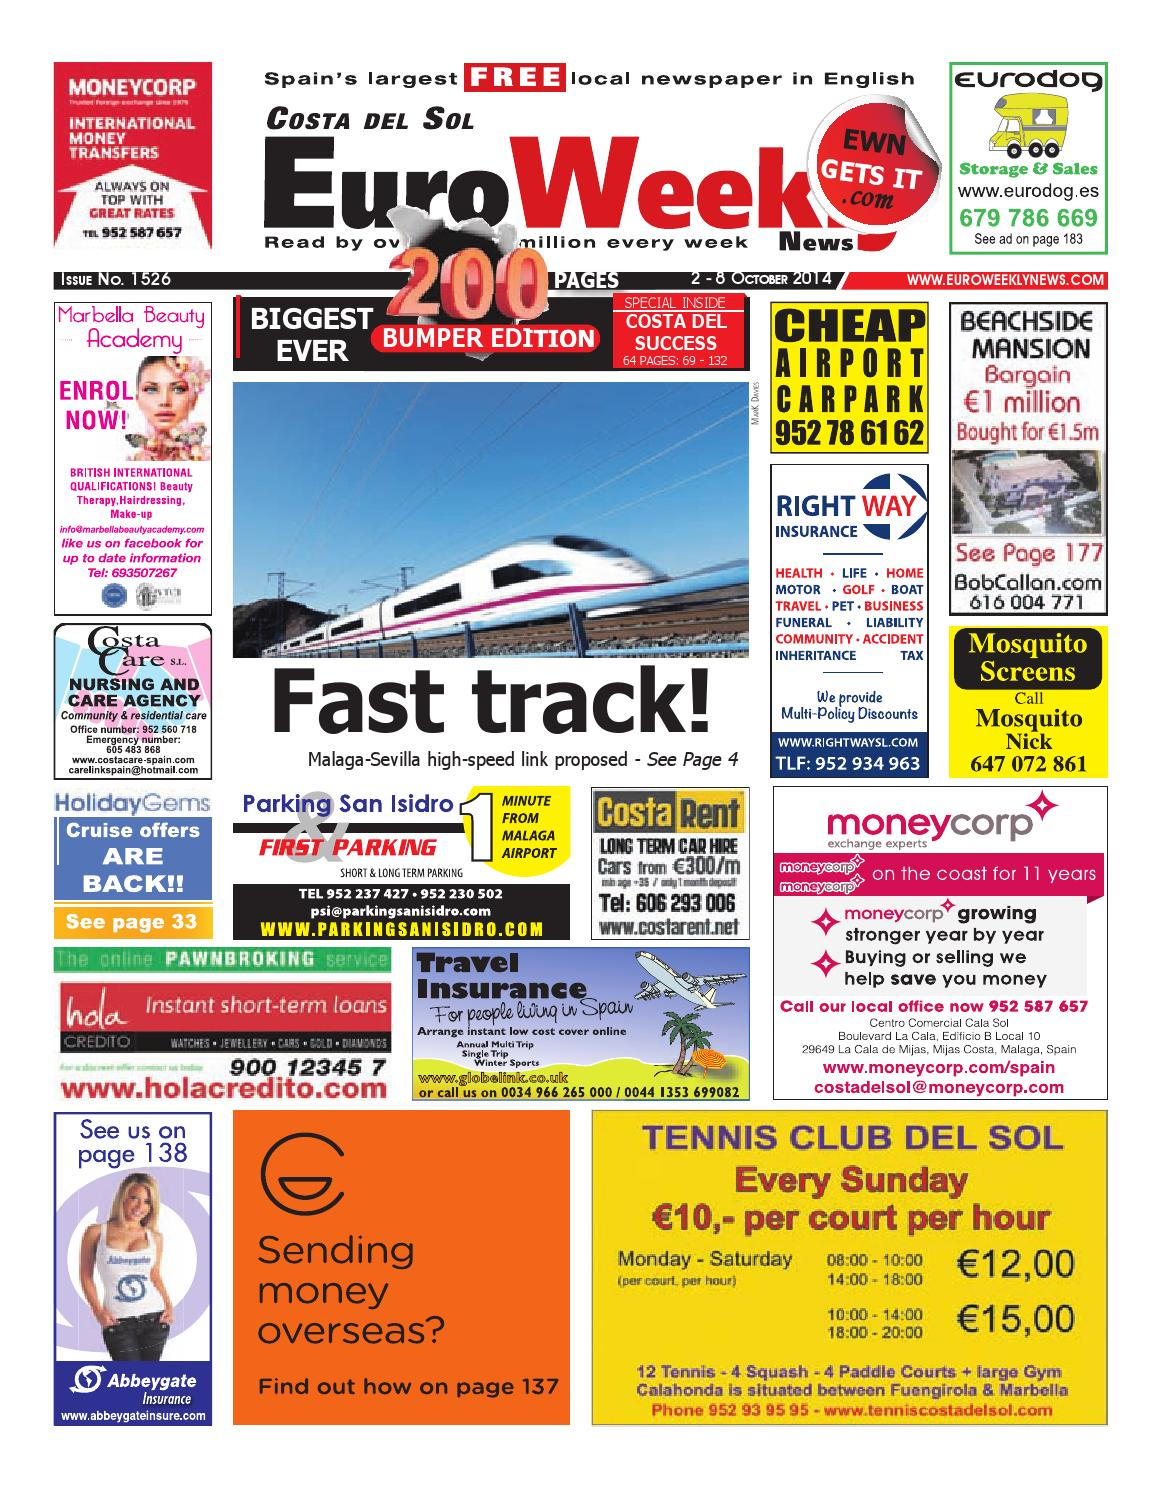 Euro weekly news costa del sol 2 8 october 2014 issue 1526 by euro weekly news costa del sol 2 8 october 2014 issue 1526 by euro weekly news media sa issuu fandeluxe Gallery